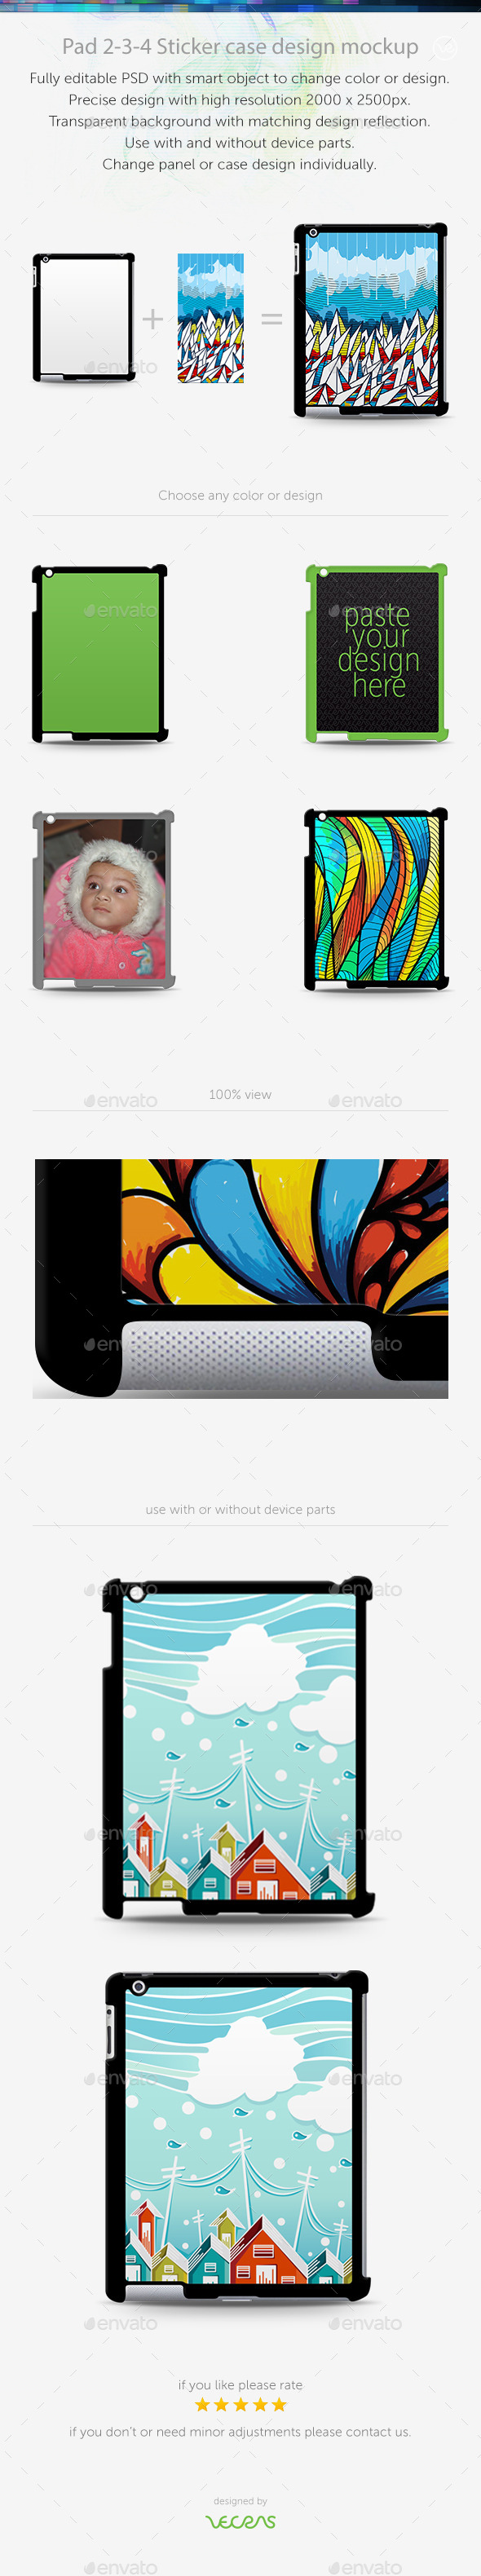 GraphicRiver Pad 2-3-4 Sticker Case Design Mockup 10401946